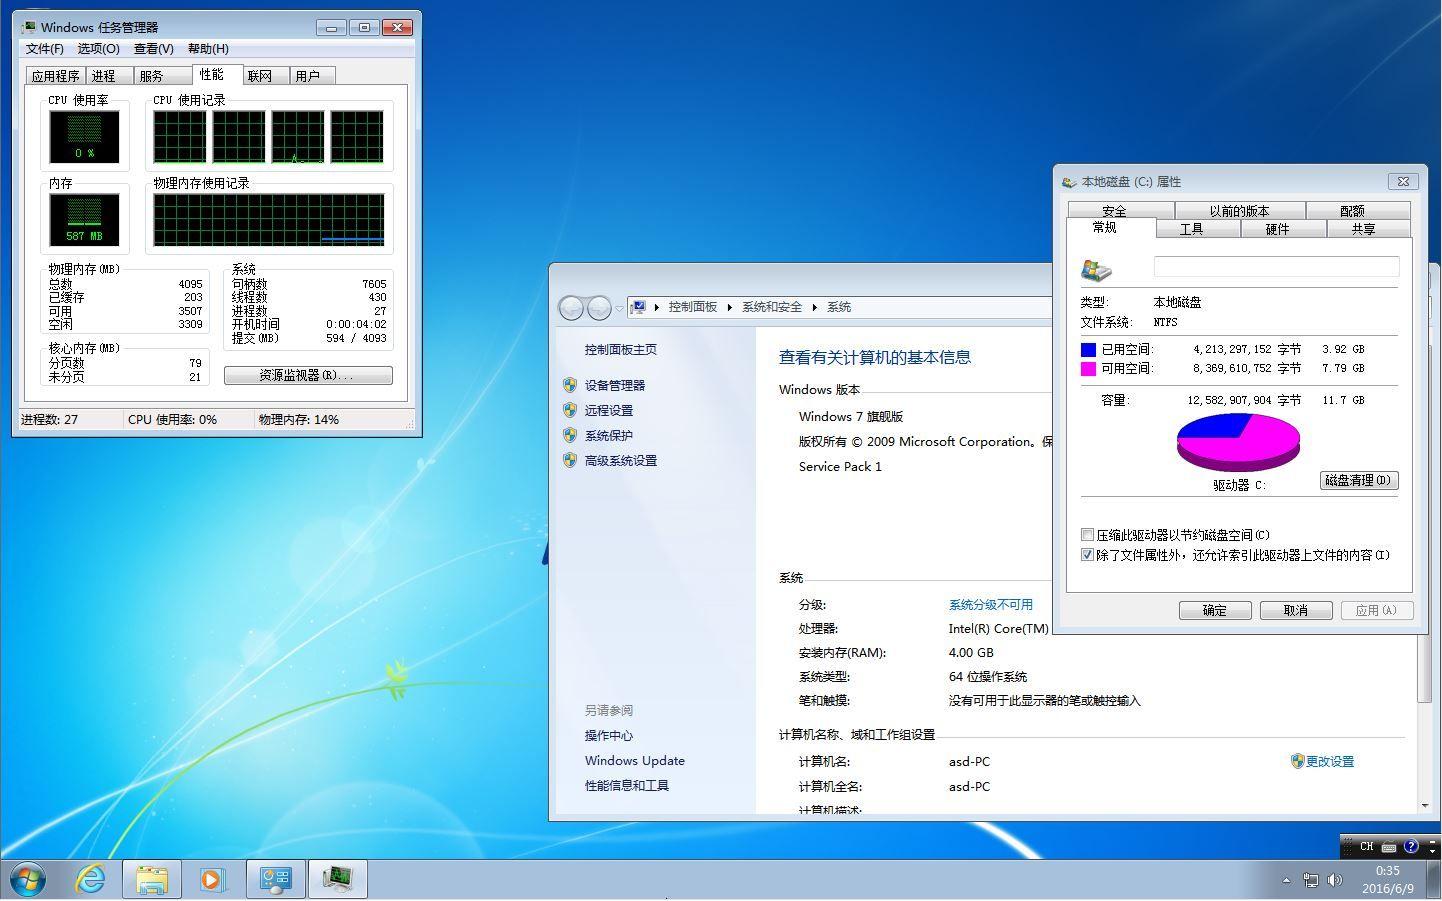 Windows 7 Ultimate SP1 7601.23403 RollUP 2016 x86-x64 zh-CN Micro v2-01